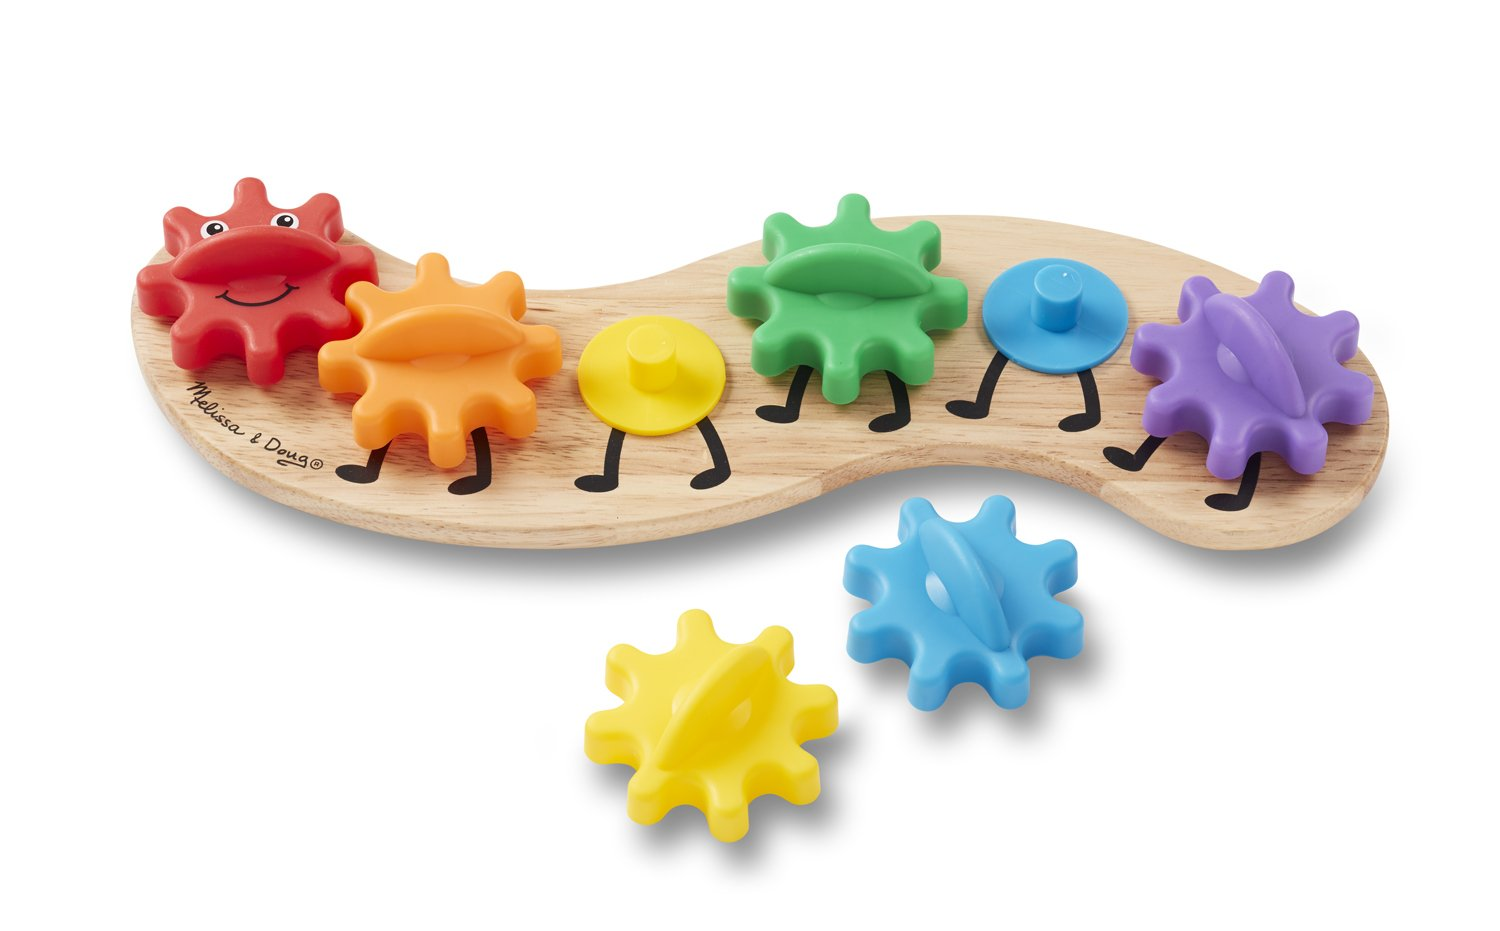 Melissa & Doug Rainbow Caterpillar Gear Toy With 6 Interchangeable Gears 3084